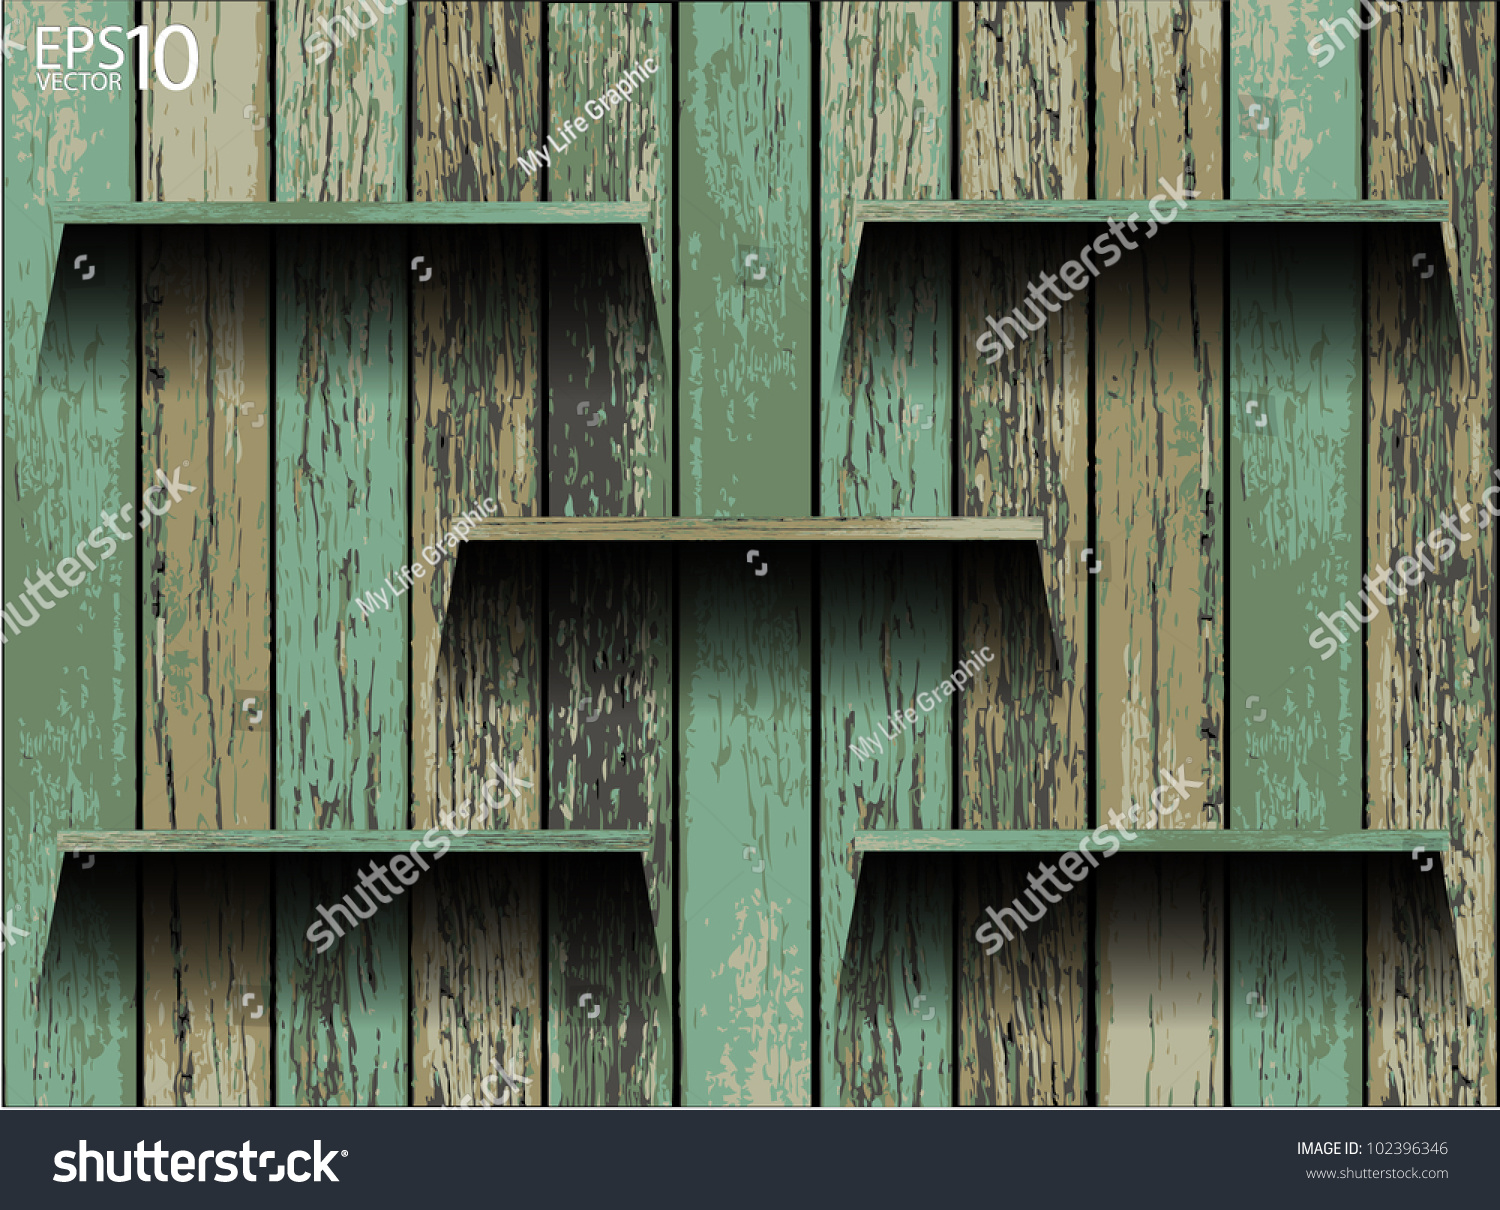 Interior wooden shelves free vector - Save To A Lightbox